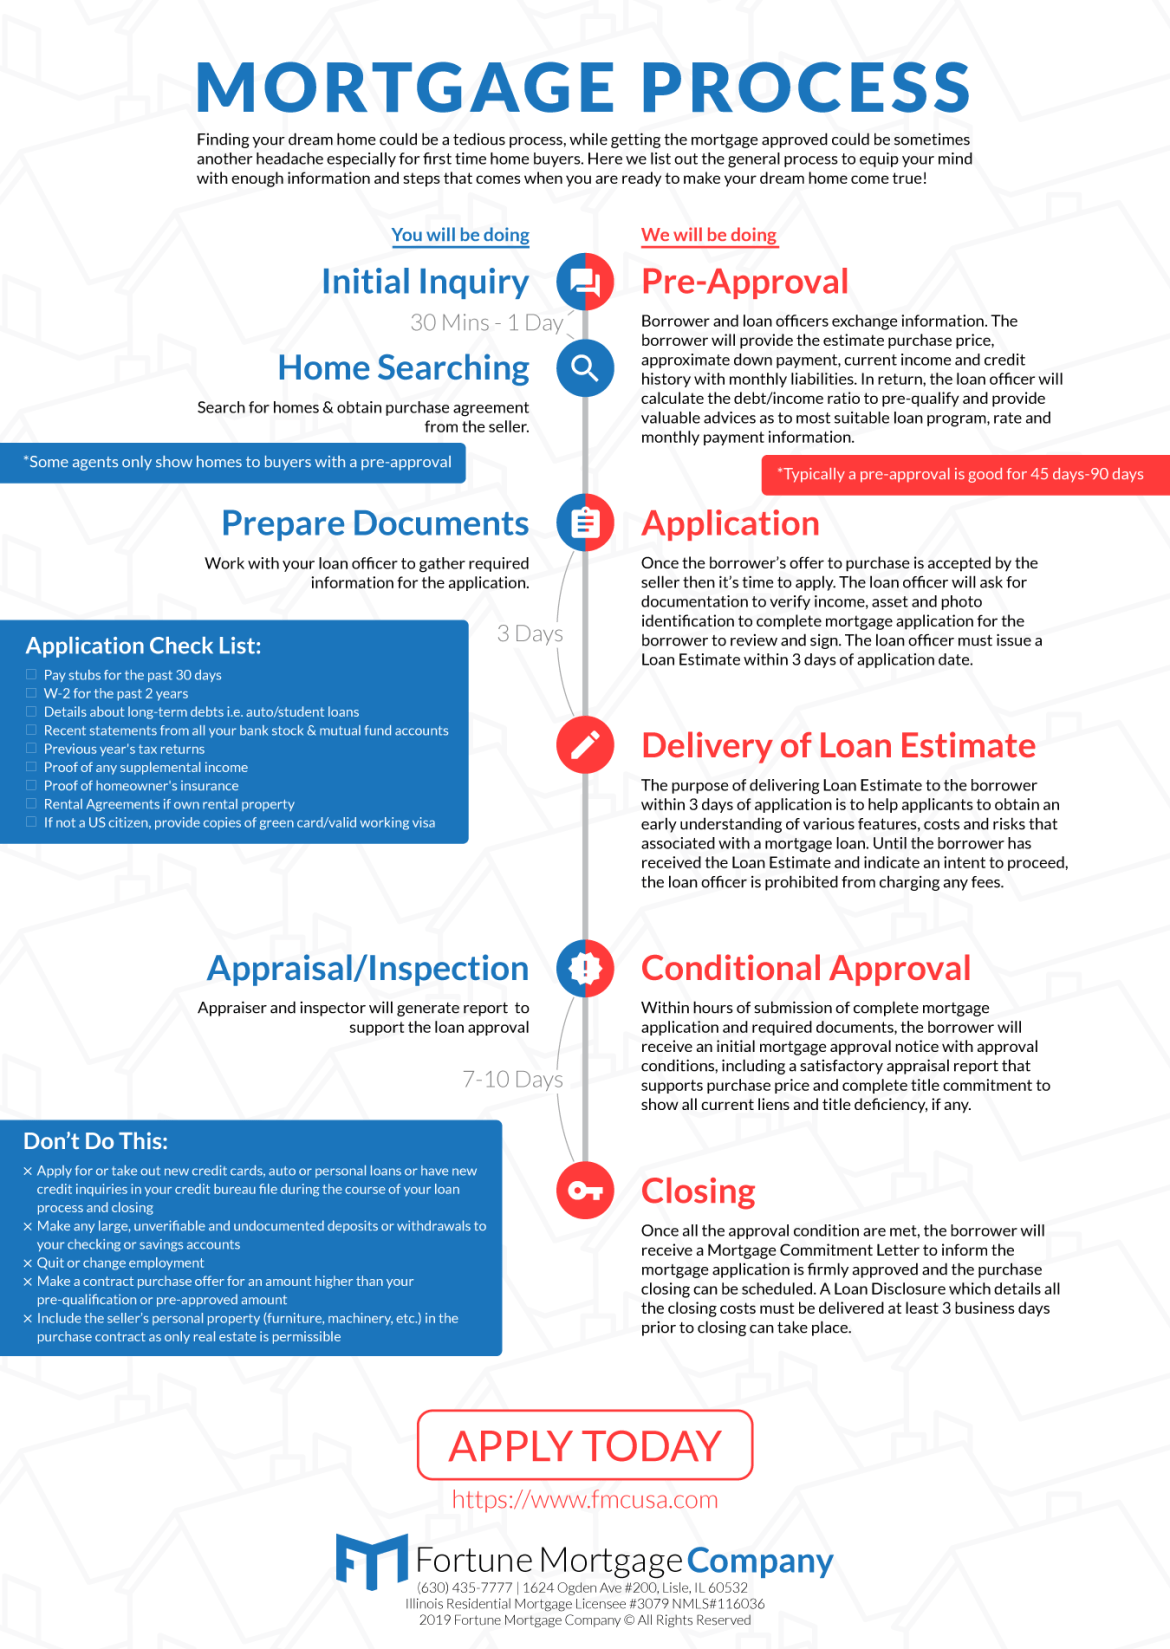 Mortgage Process Infographic